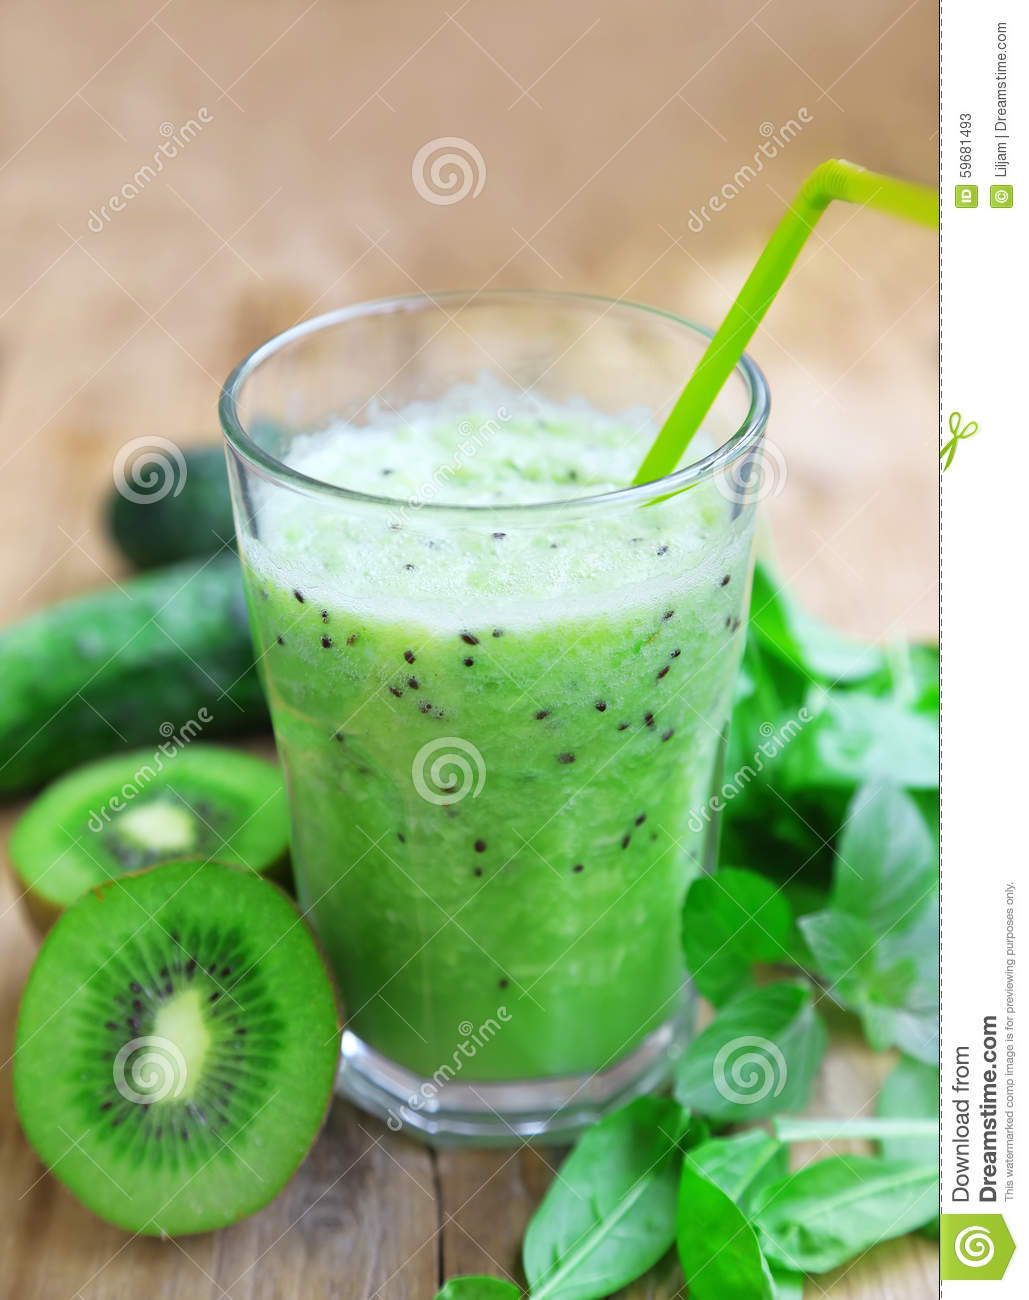 fruit pies healthy smoothies with spinach and fruit